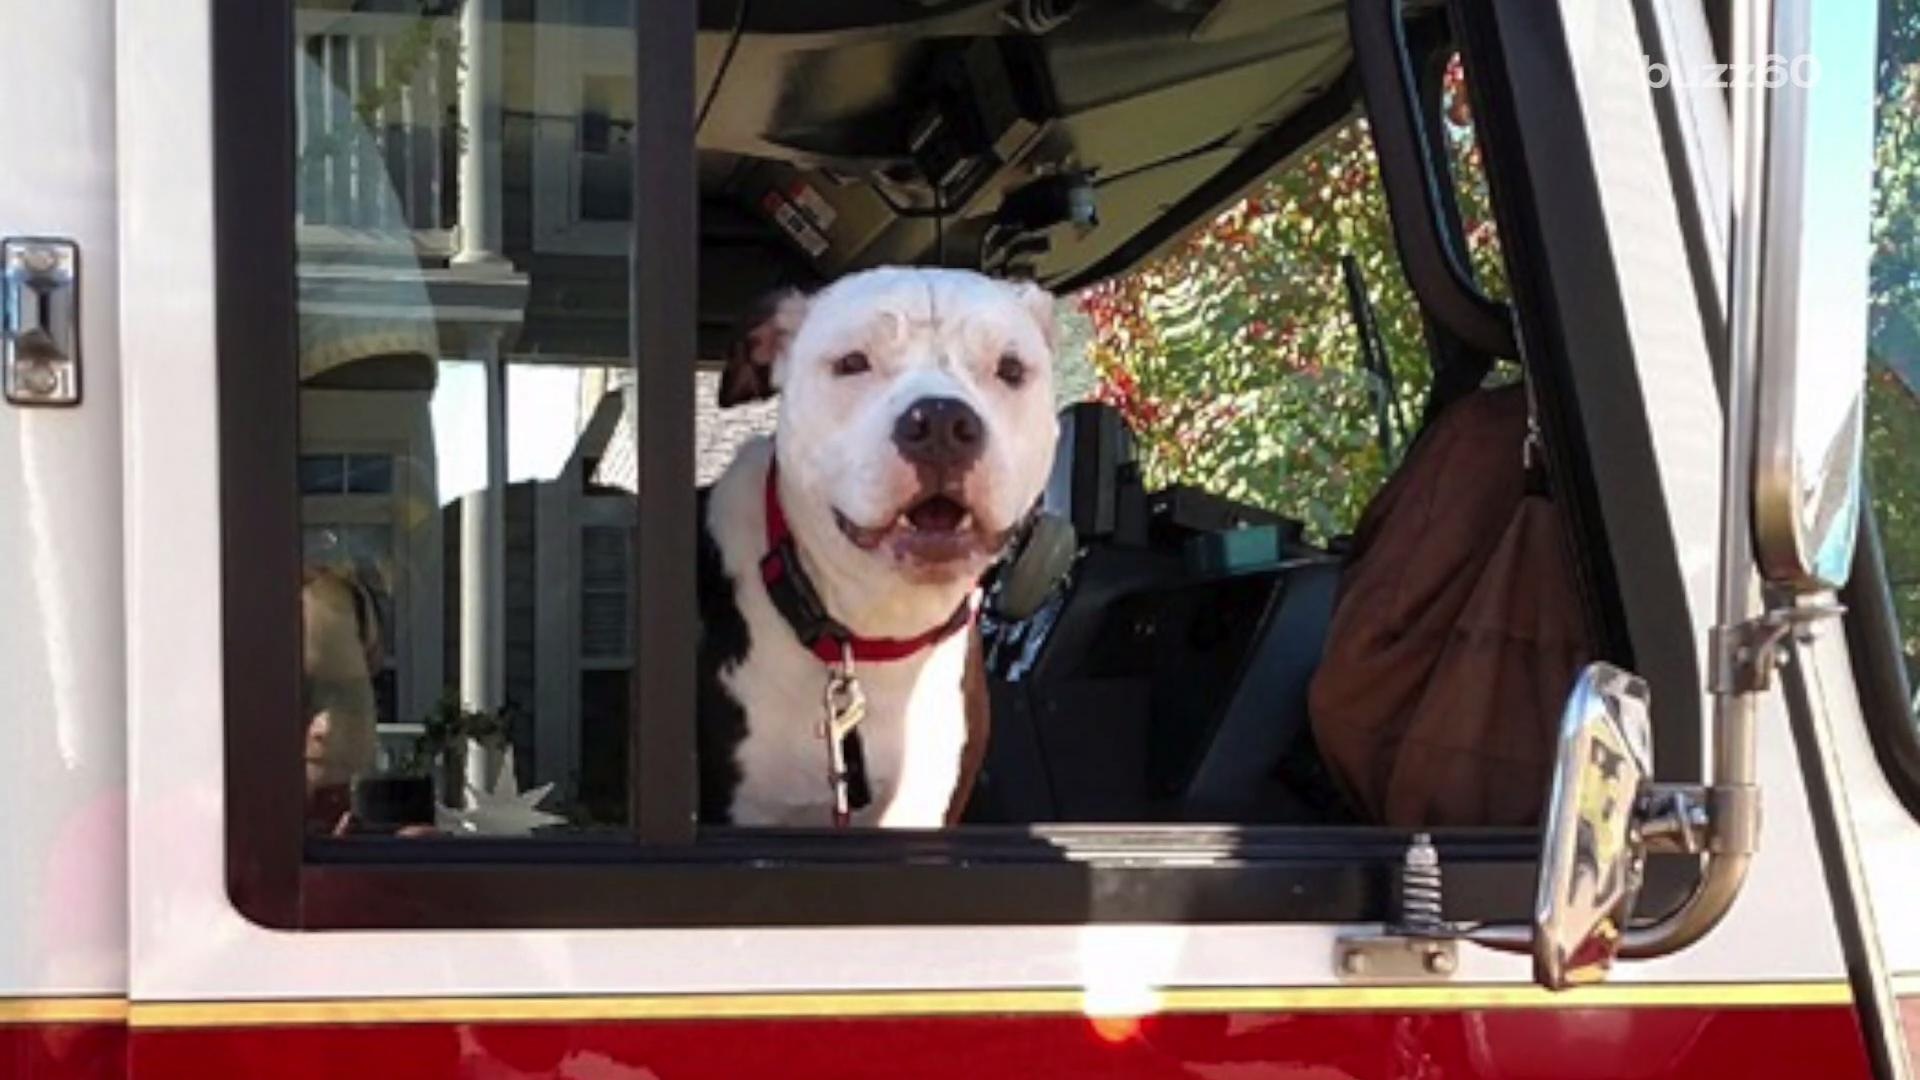 Puppy rescued from fire is now honorary firefighter and community superstar